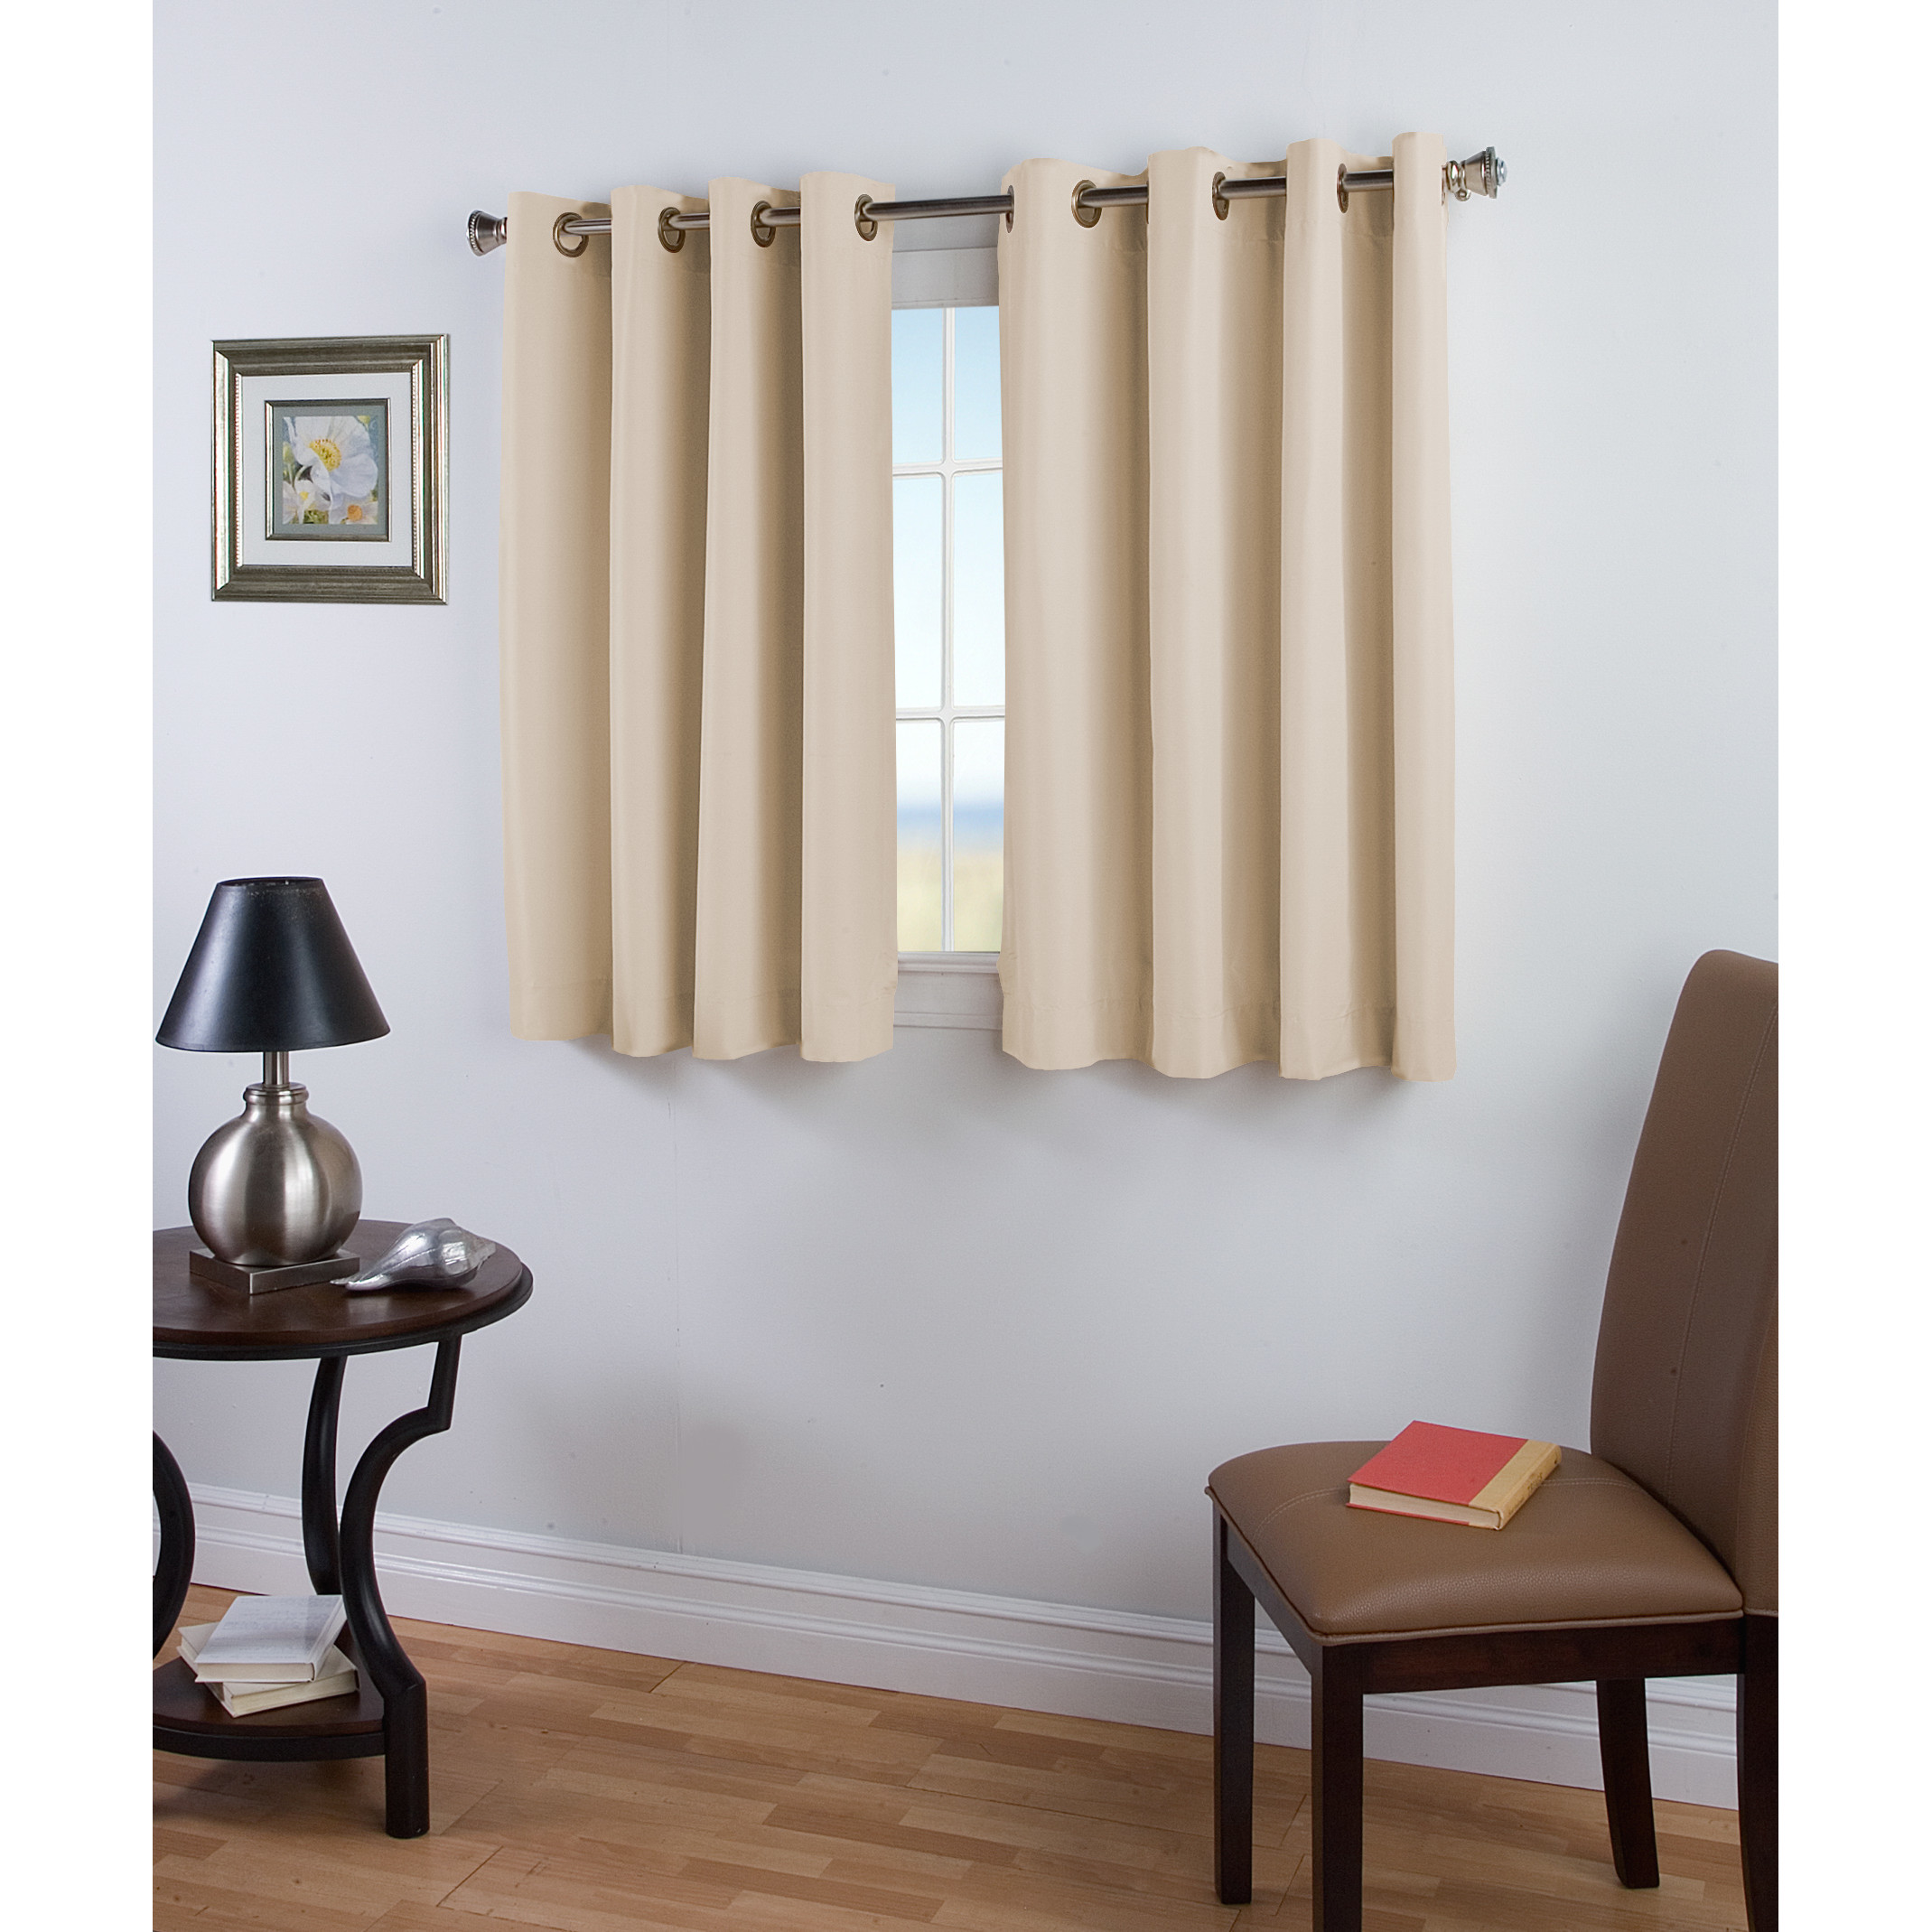 Curtain Marvellous Short Panels Length Bedroom Curtains Atmosphere Ideas For Windows Window Panel Cabin Sheer Top Bathroom Apppie Org